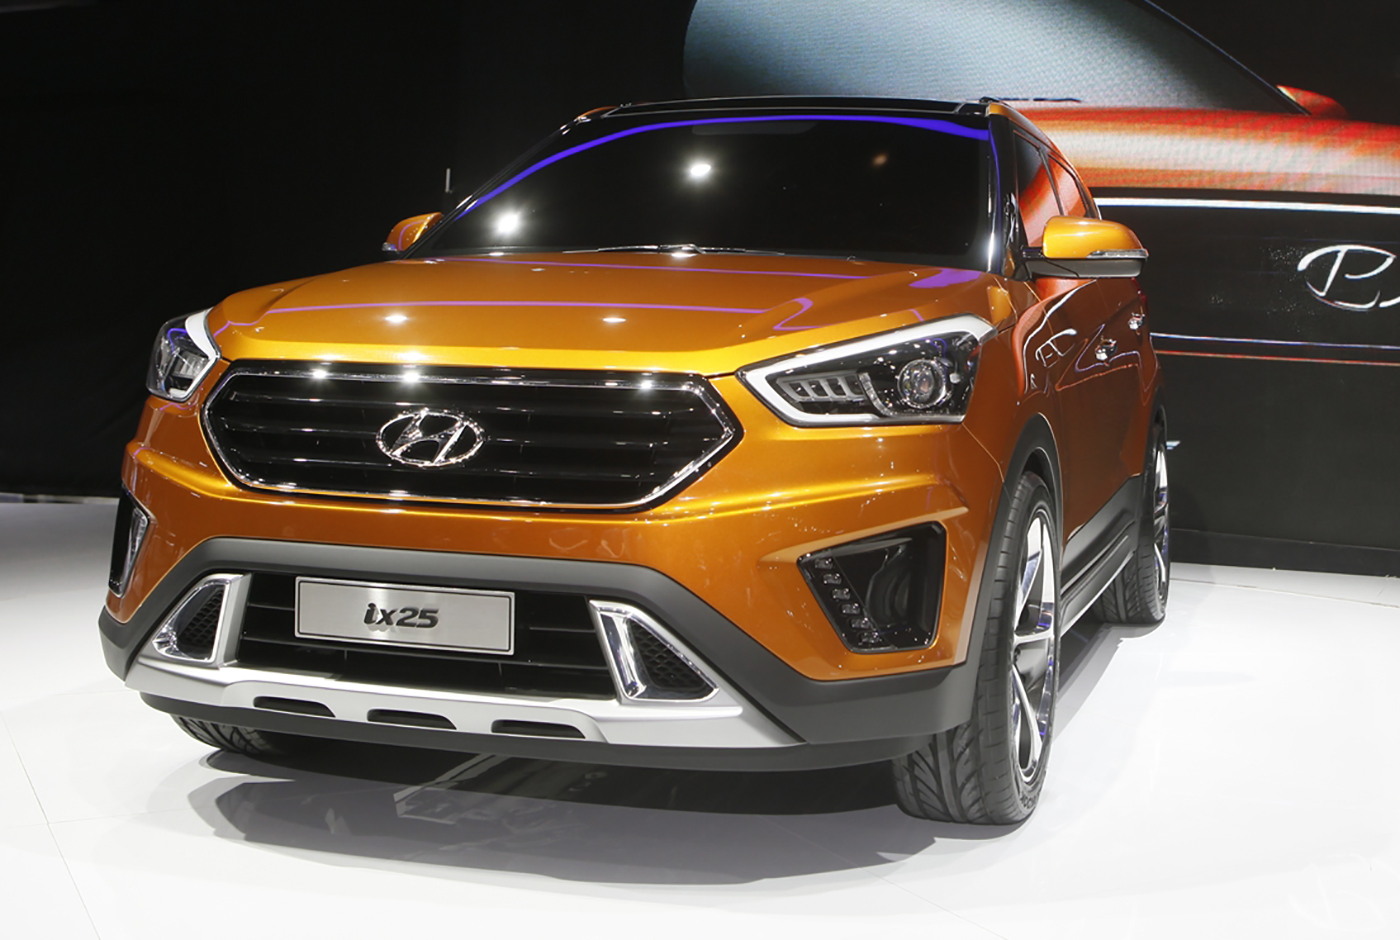 new car launches june 2015Hyundai India to begin media activities for ix25 compact SUV from